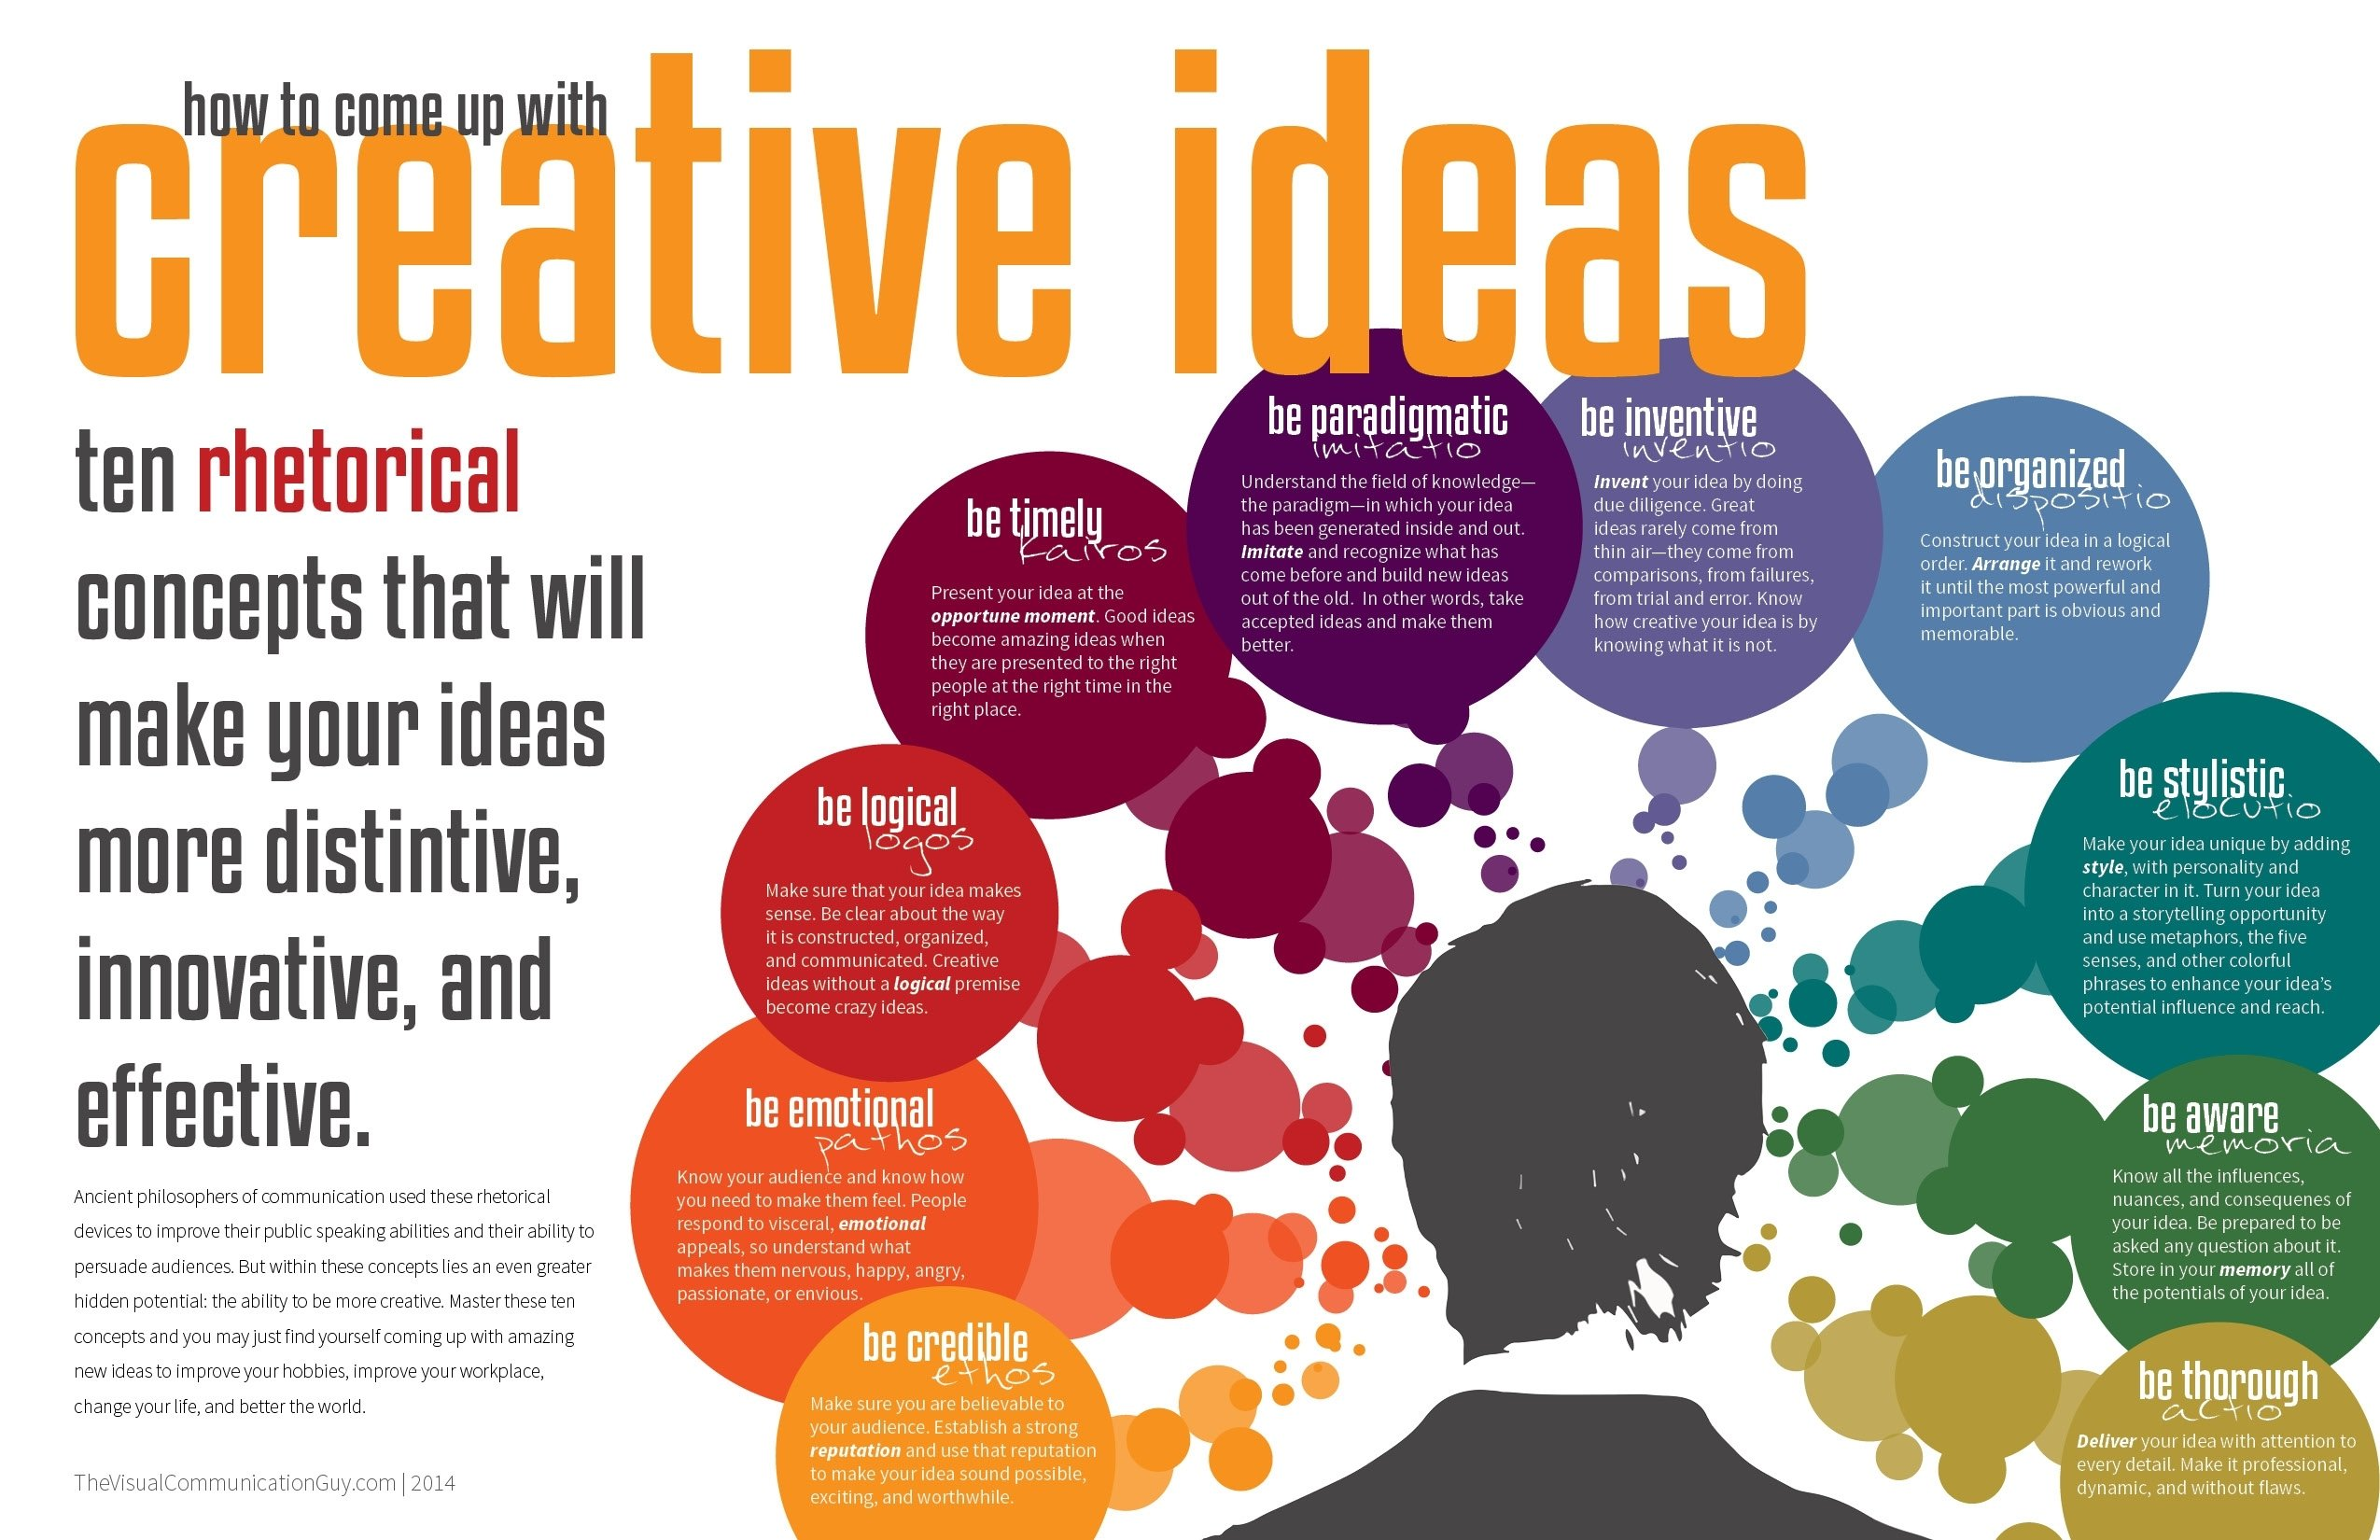 10 Beautiful How To Present An Idea ideas innovation ingenuity inventiveness 1 2020